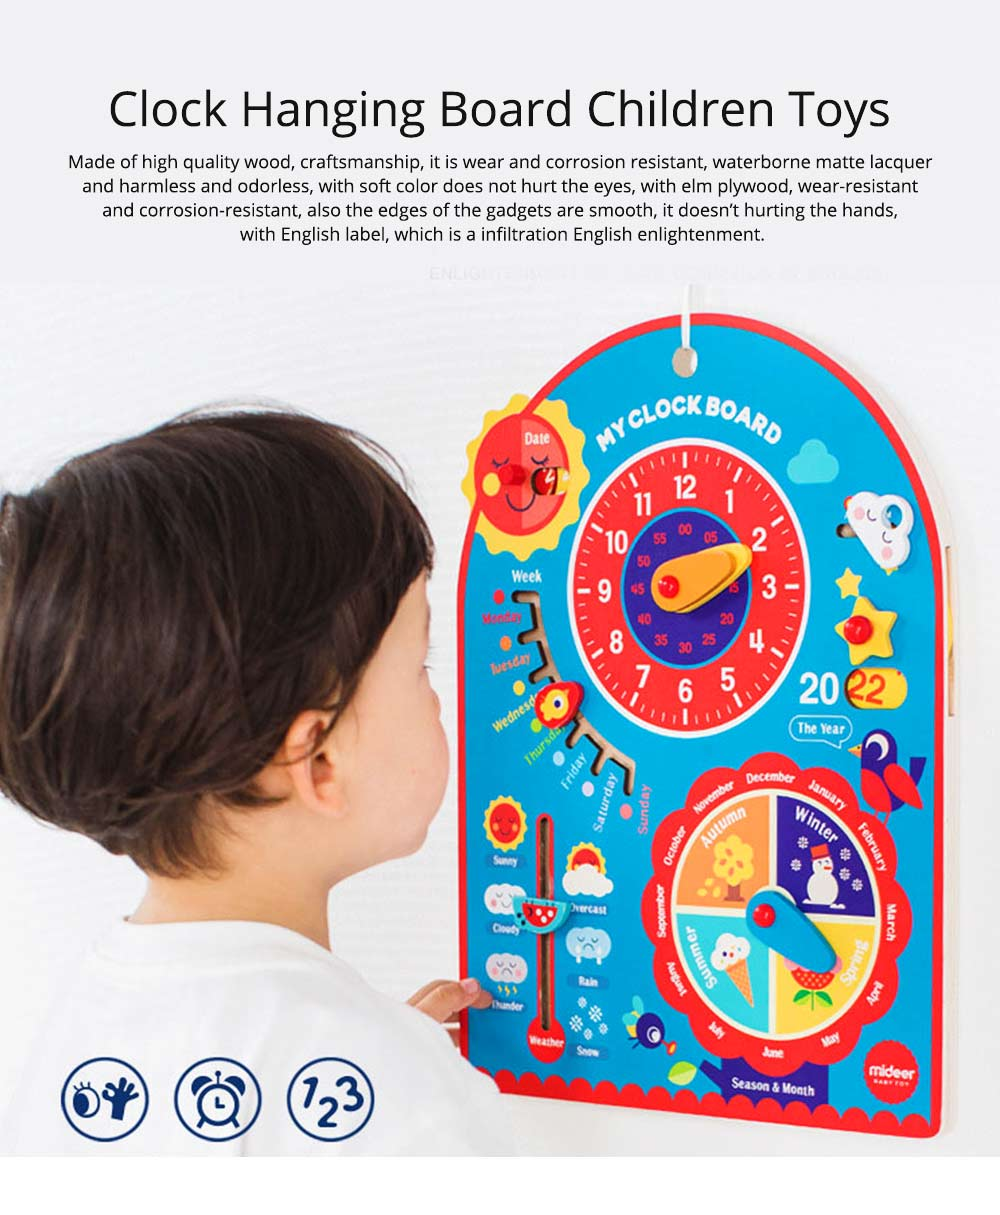 Calendar Wooden Clock Puzzle Hanging Board Multifunctional Daily Learning Digital Season Cognitive Children Toys for 3 to 6 years kids 0